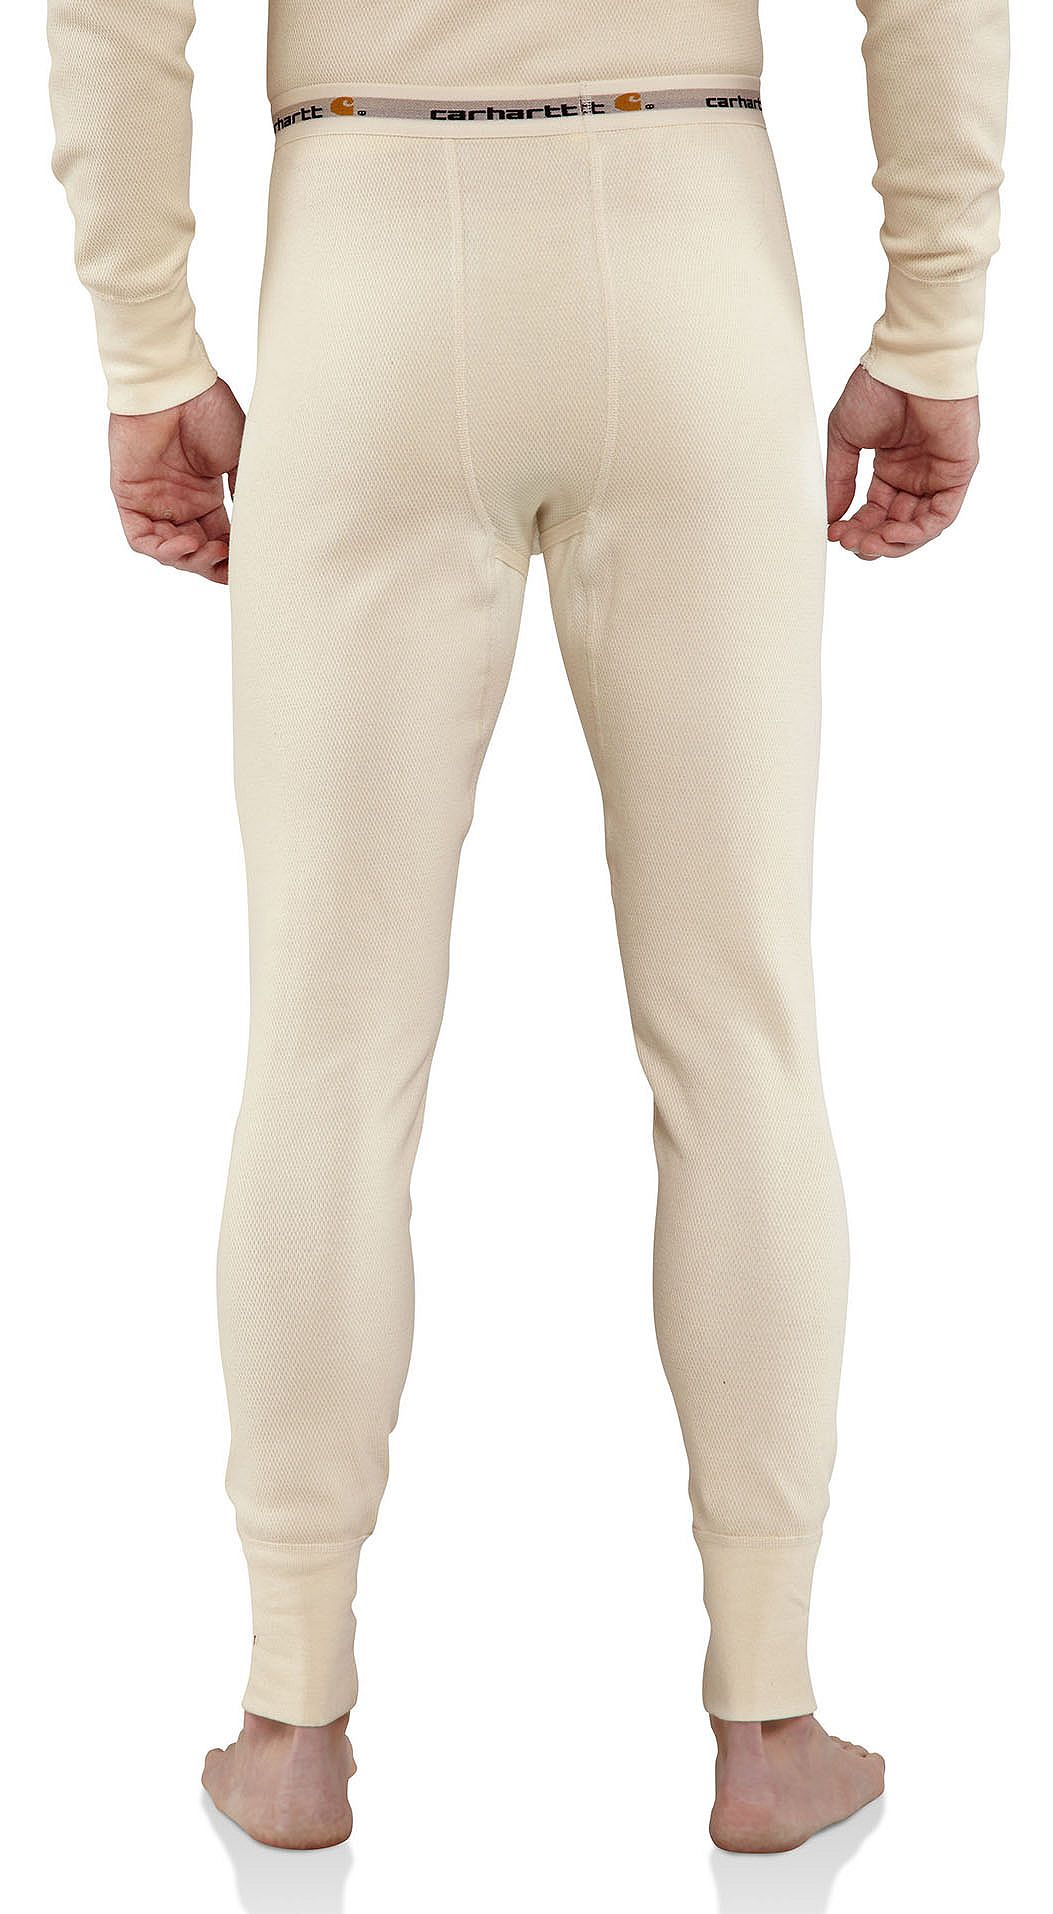 Carhartt Heavy Weight Cotton Thermal Underwear - Big & Tall | Sheplers